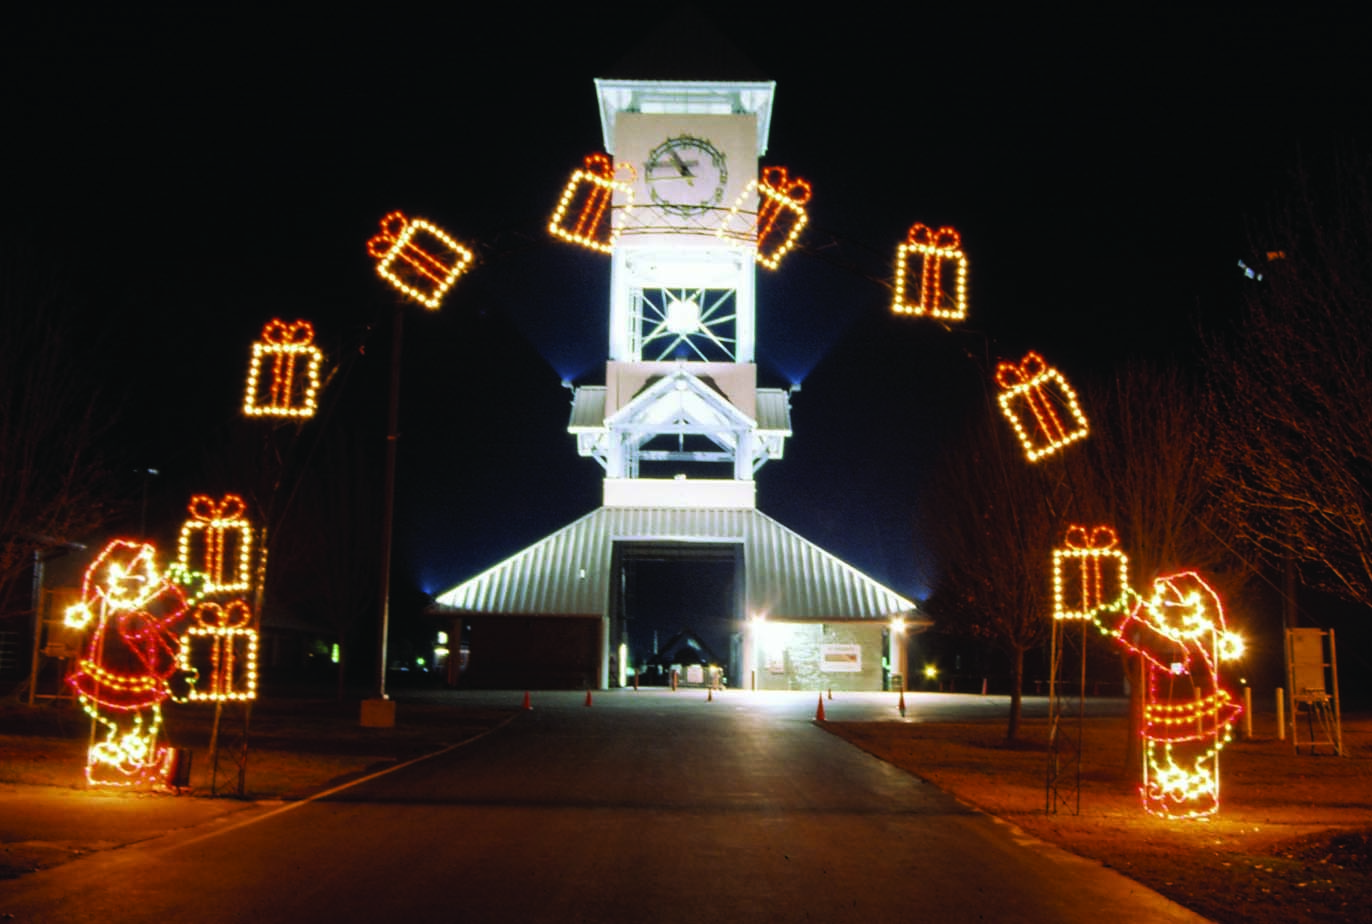 Commercial christmas decorations outdoor - Lighted Arch Outdoor Christmas Decorations Illustrated On The Holiday Designs Christmas Decorations Web Site Are Ready To Install